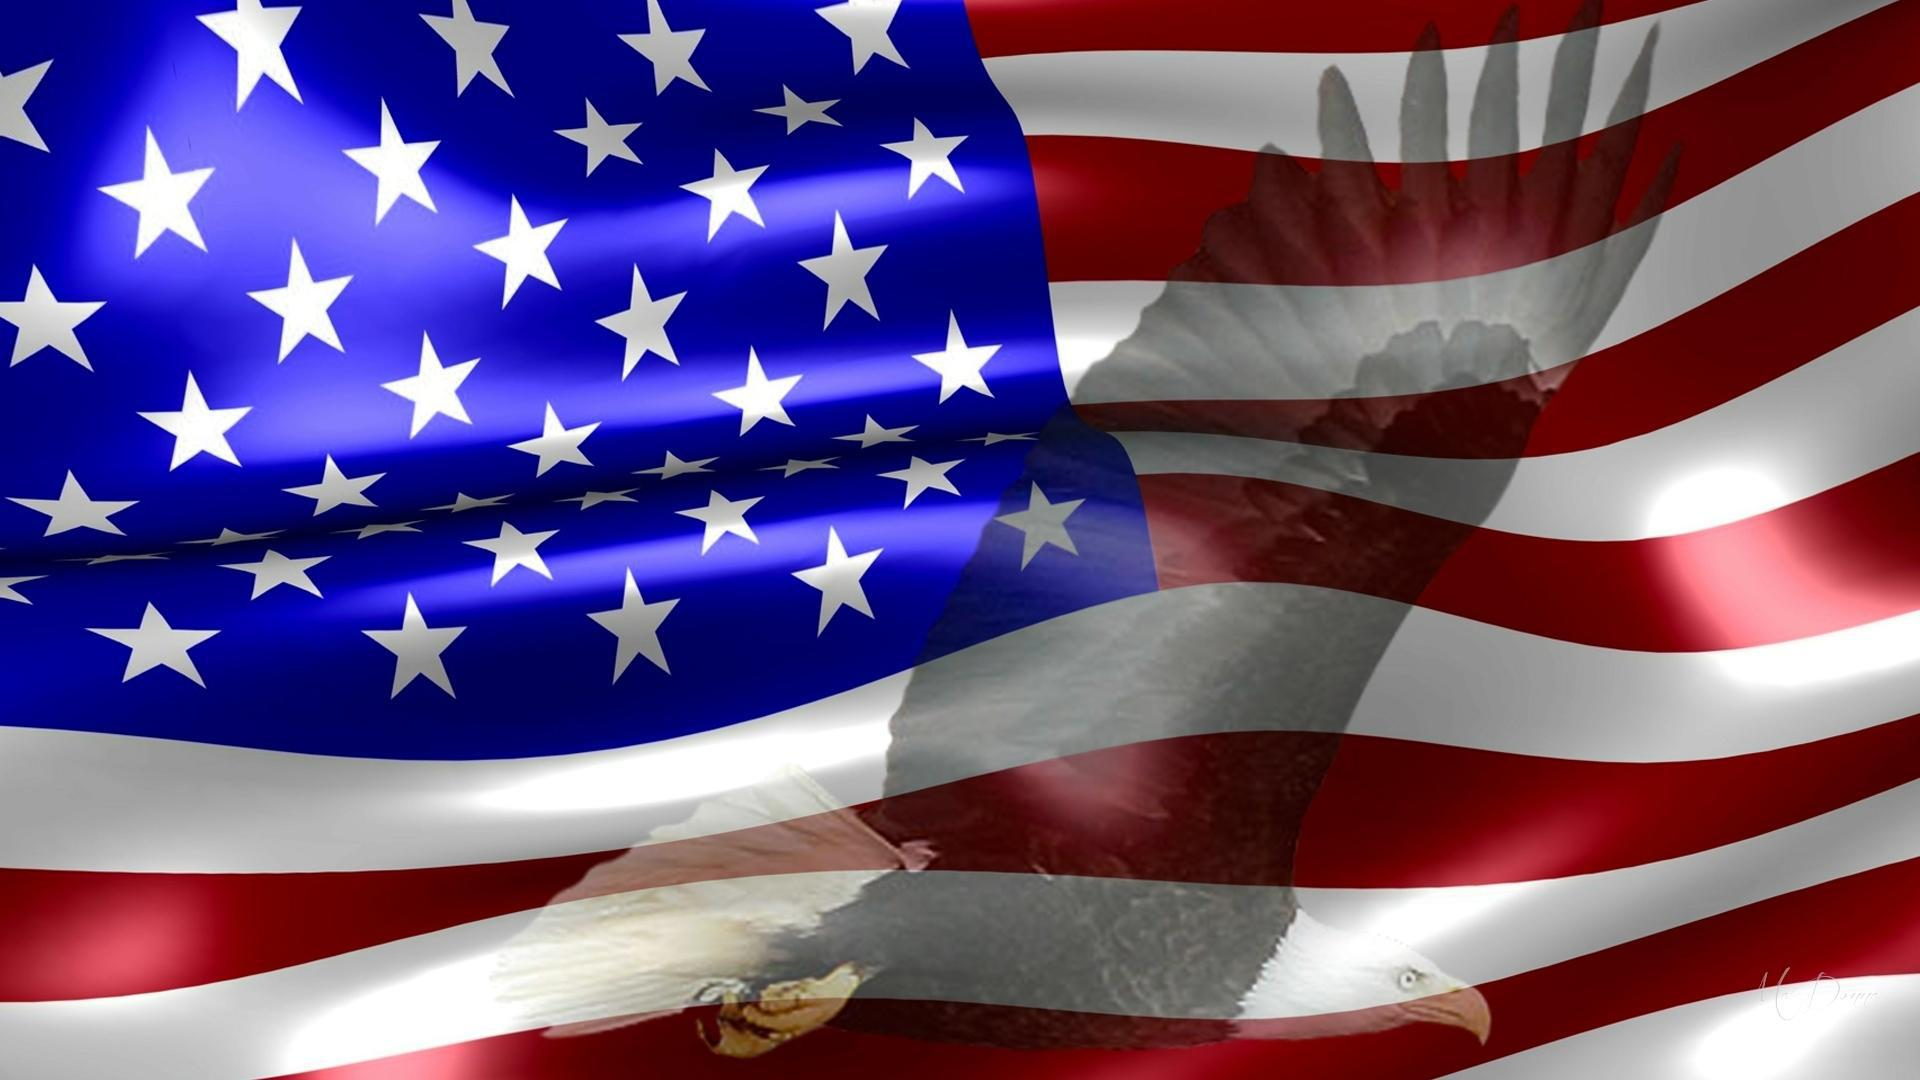 American Flag High Definition Wallpapers